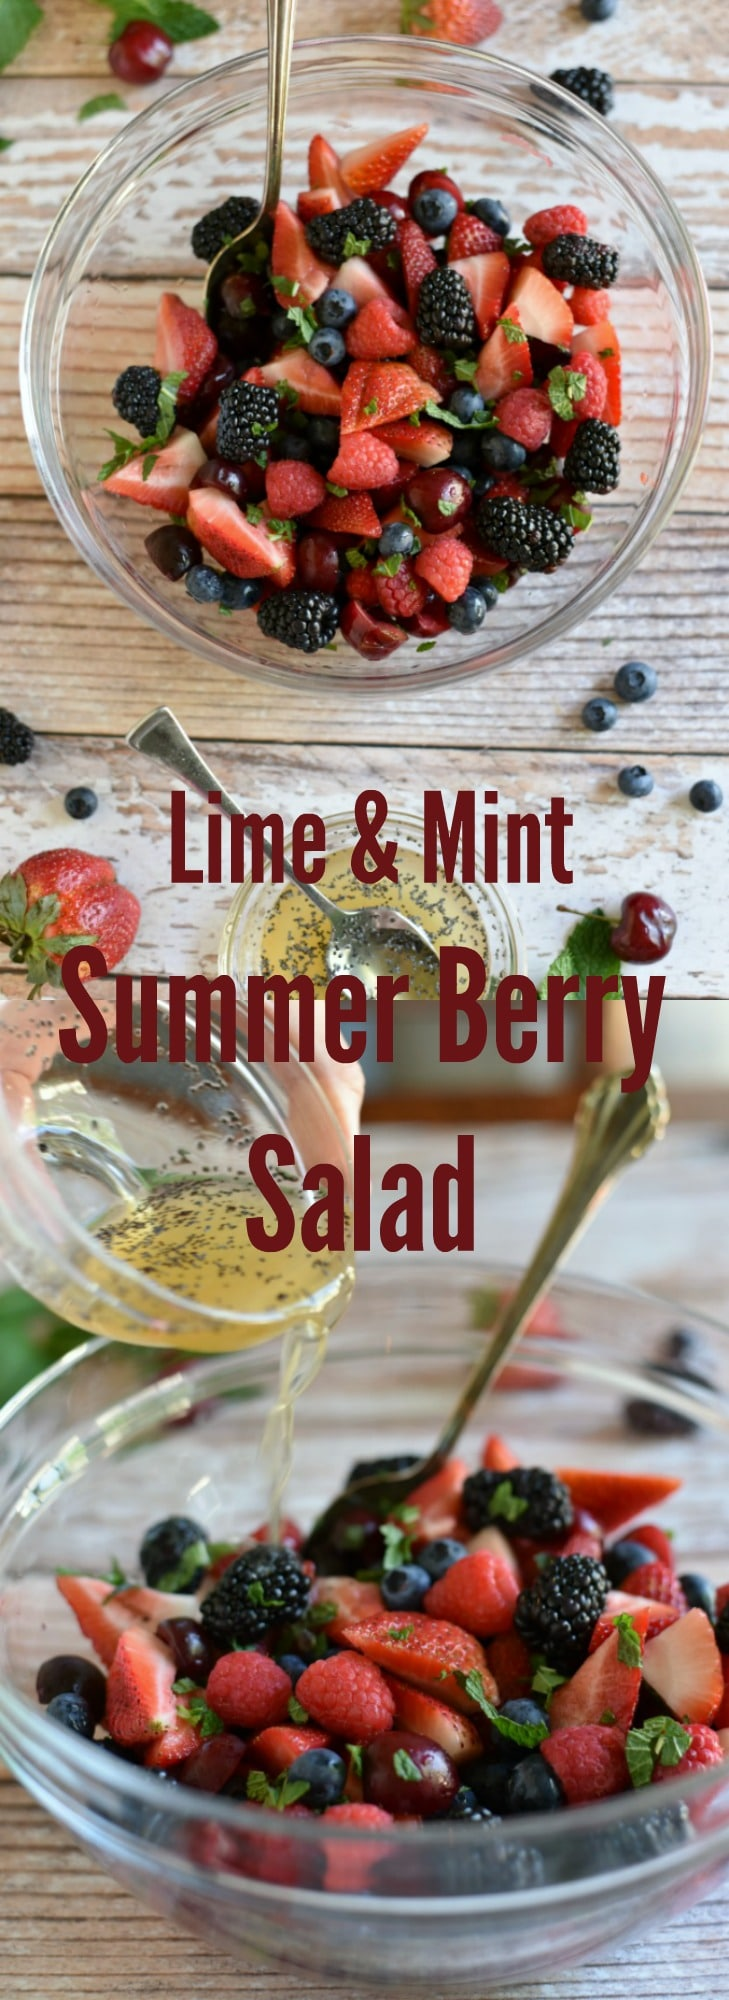 Summer Berry Fruit Salad with Mint Honey Lime Dressing and Poppy Seeds! Perfect side dish for bbq's, picnics and more!